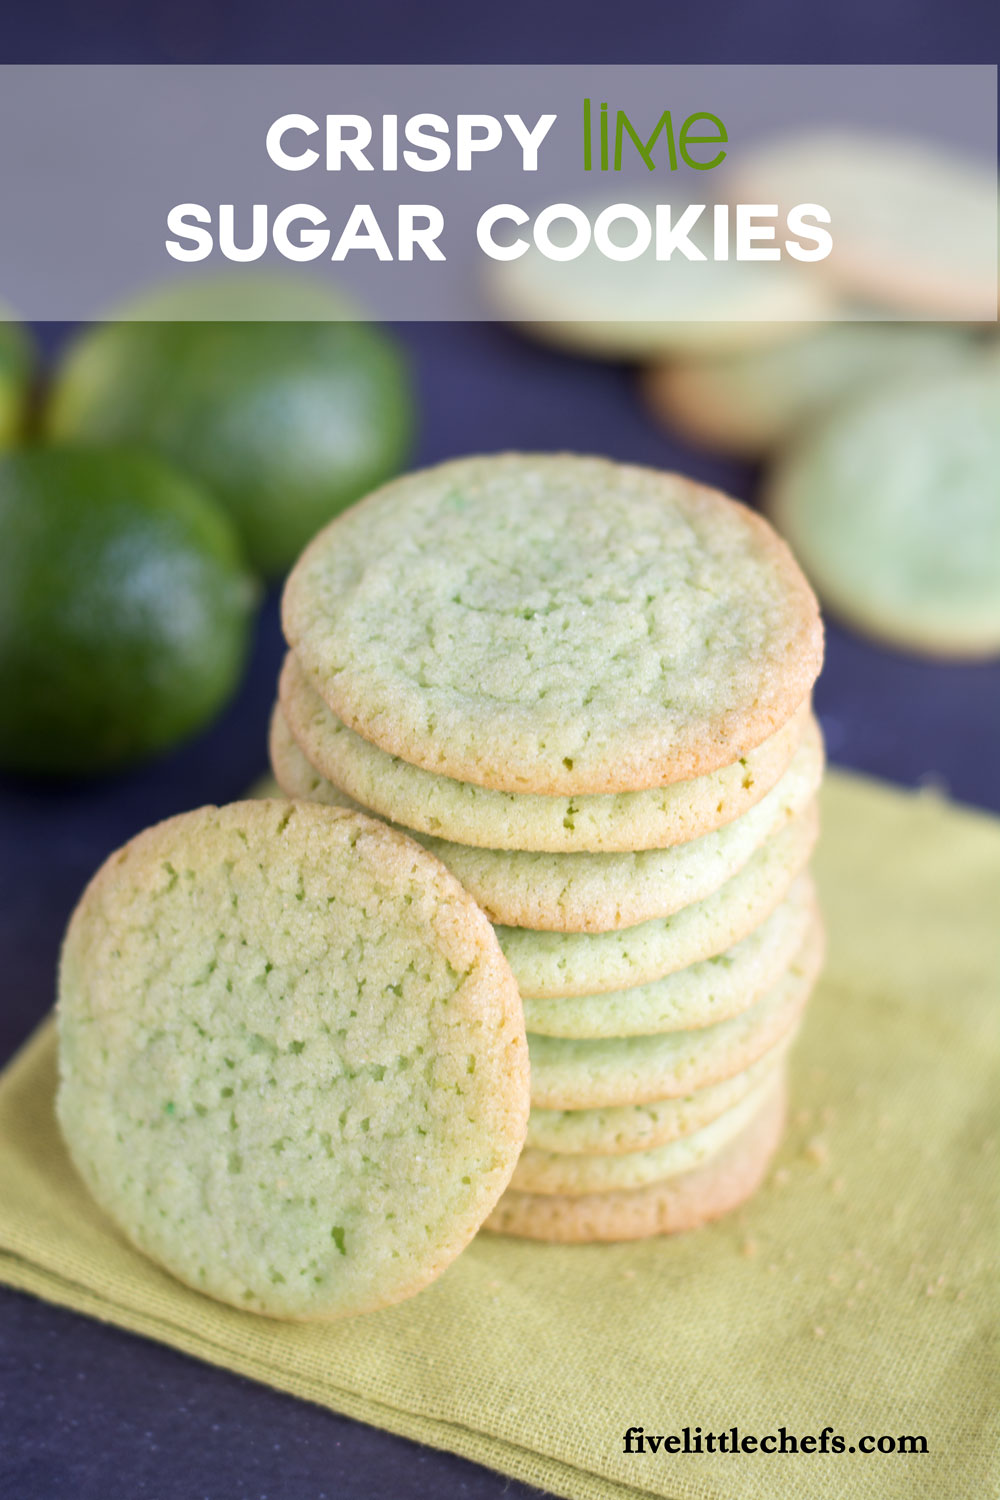 Crispy Lime Sugar Cookies are sweet and refreshing. This recipe is a perfect treat for families or parties. Tint them green for St. Patrick's Day.